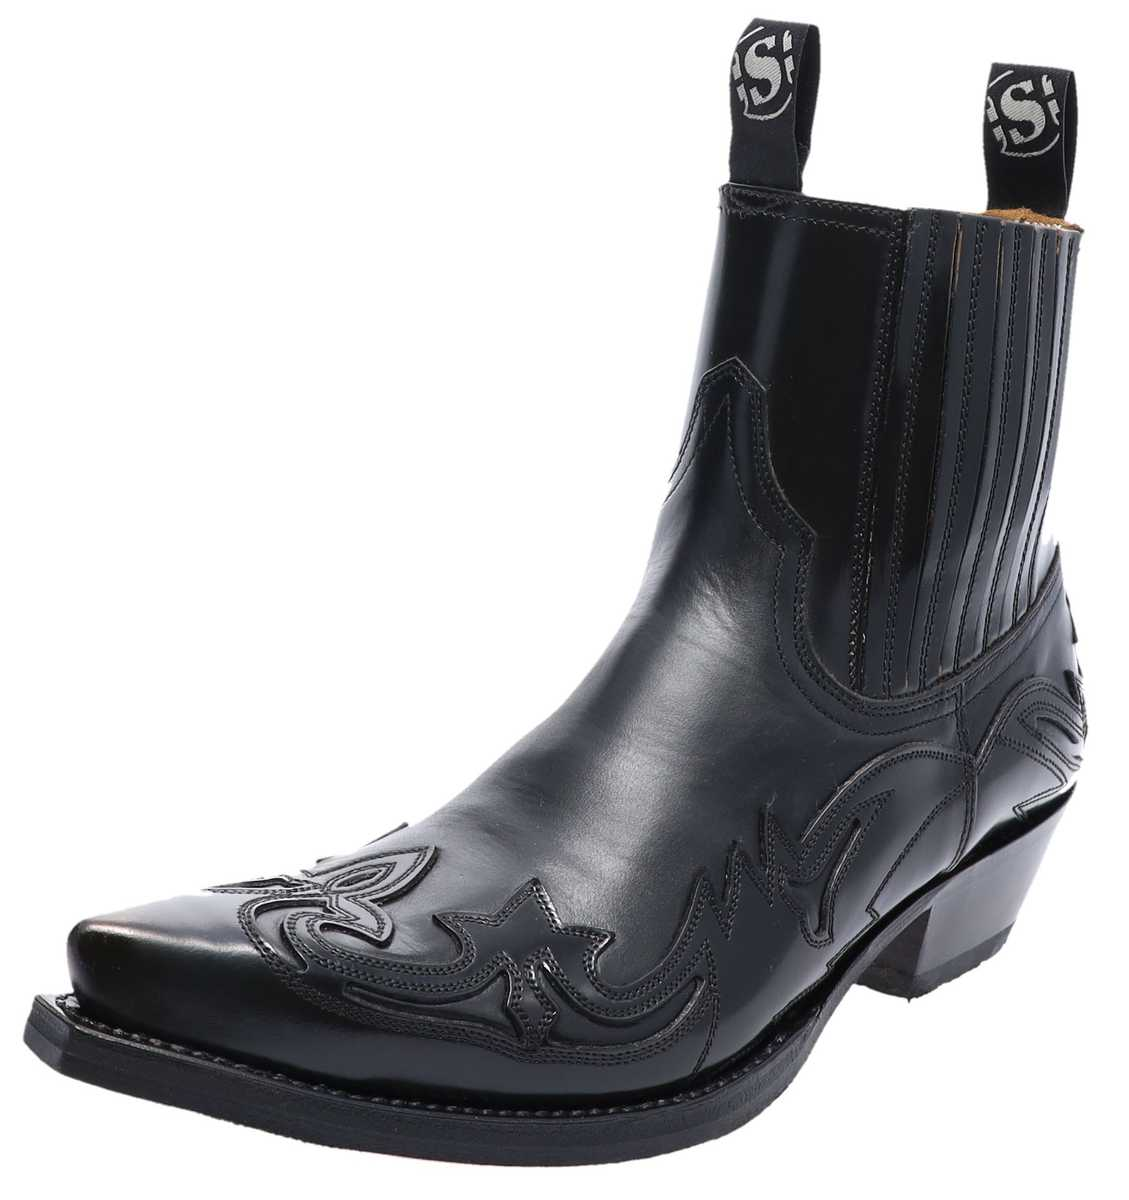 Sendra Boots 4660 Flo Negro Western ankle boot - black